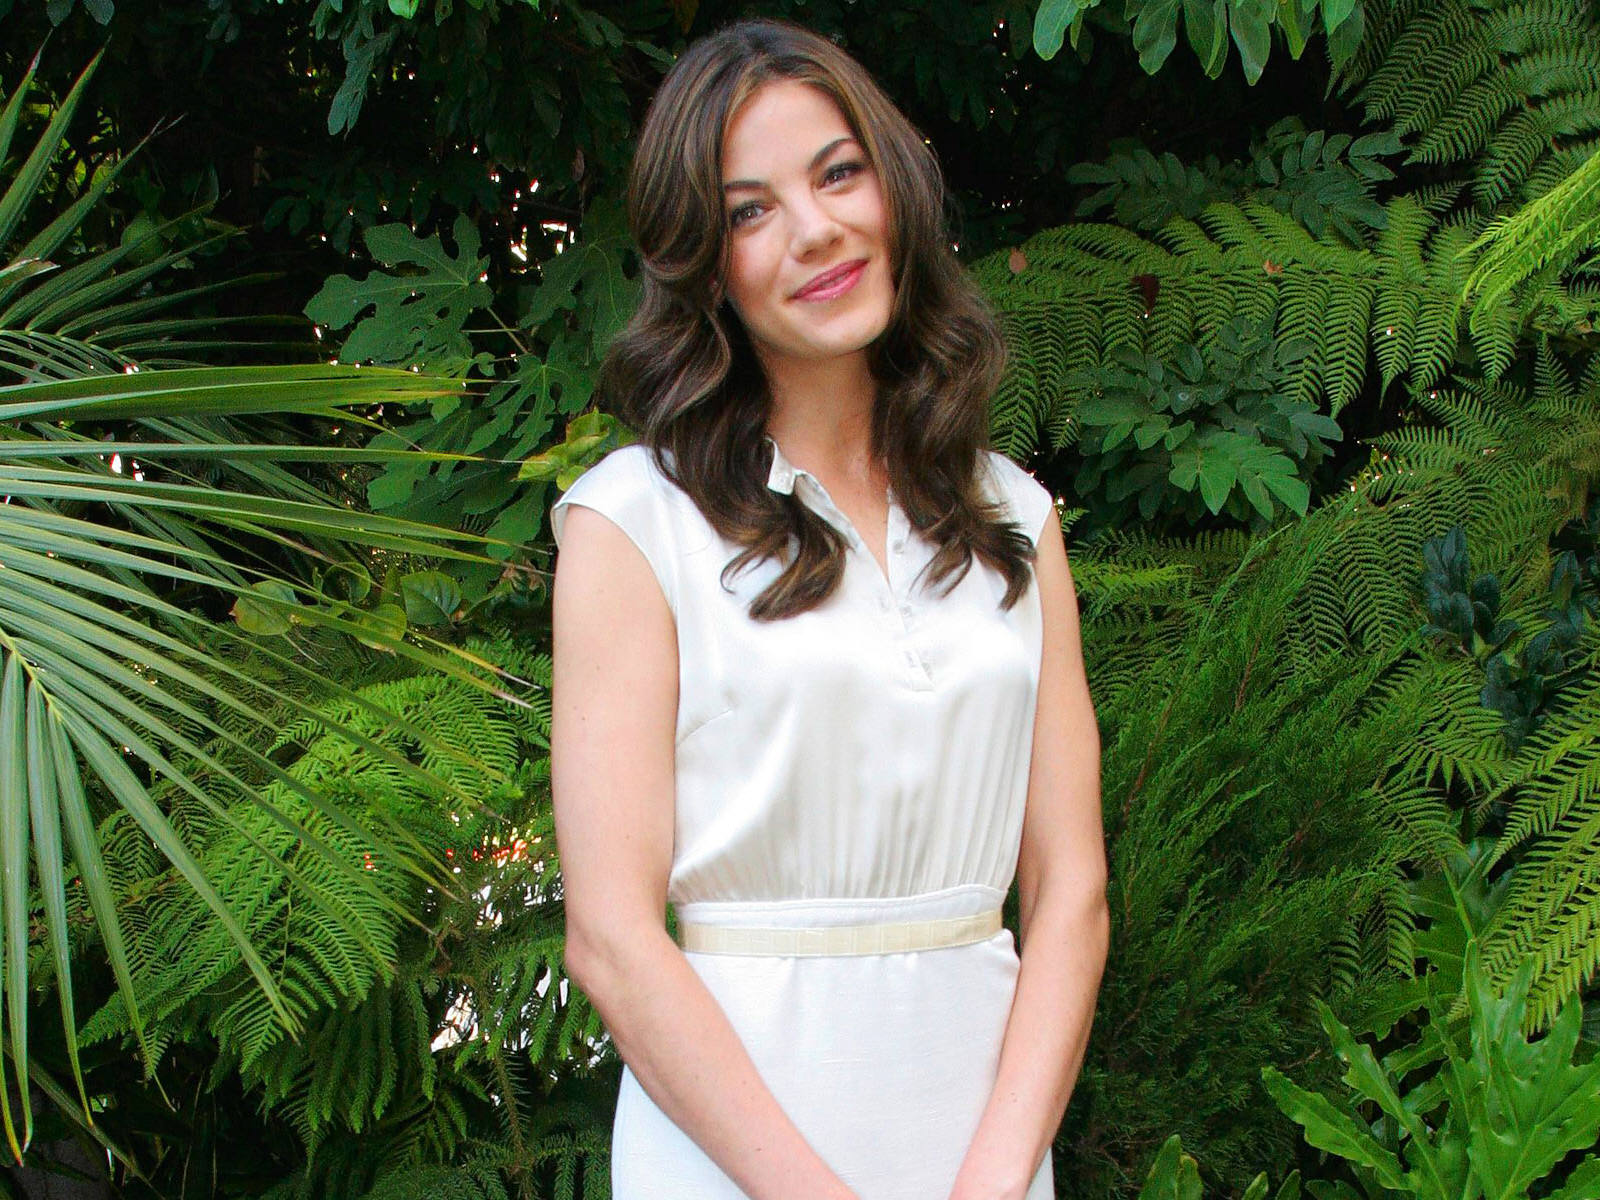 HD Wallpapers: Michelle Monaghan HD Wallpapers 1600x1200